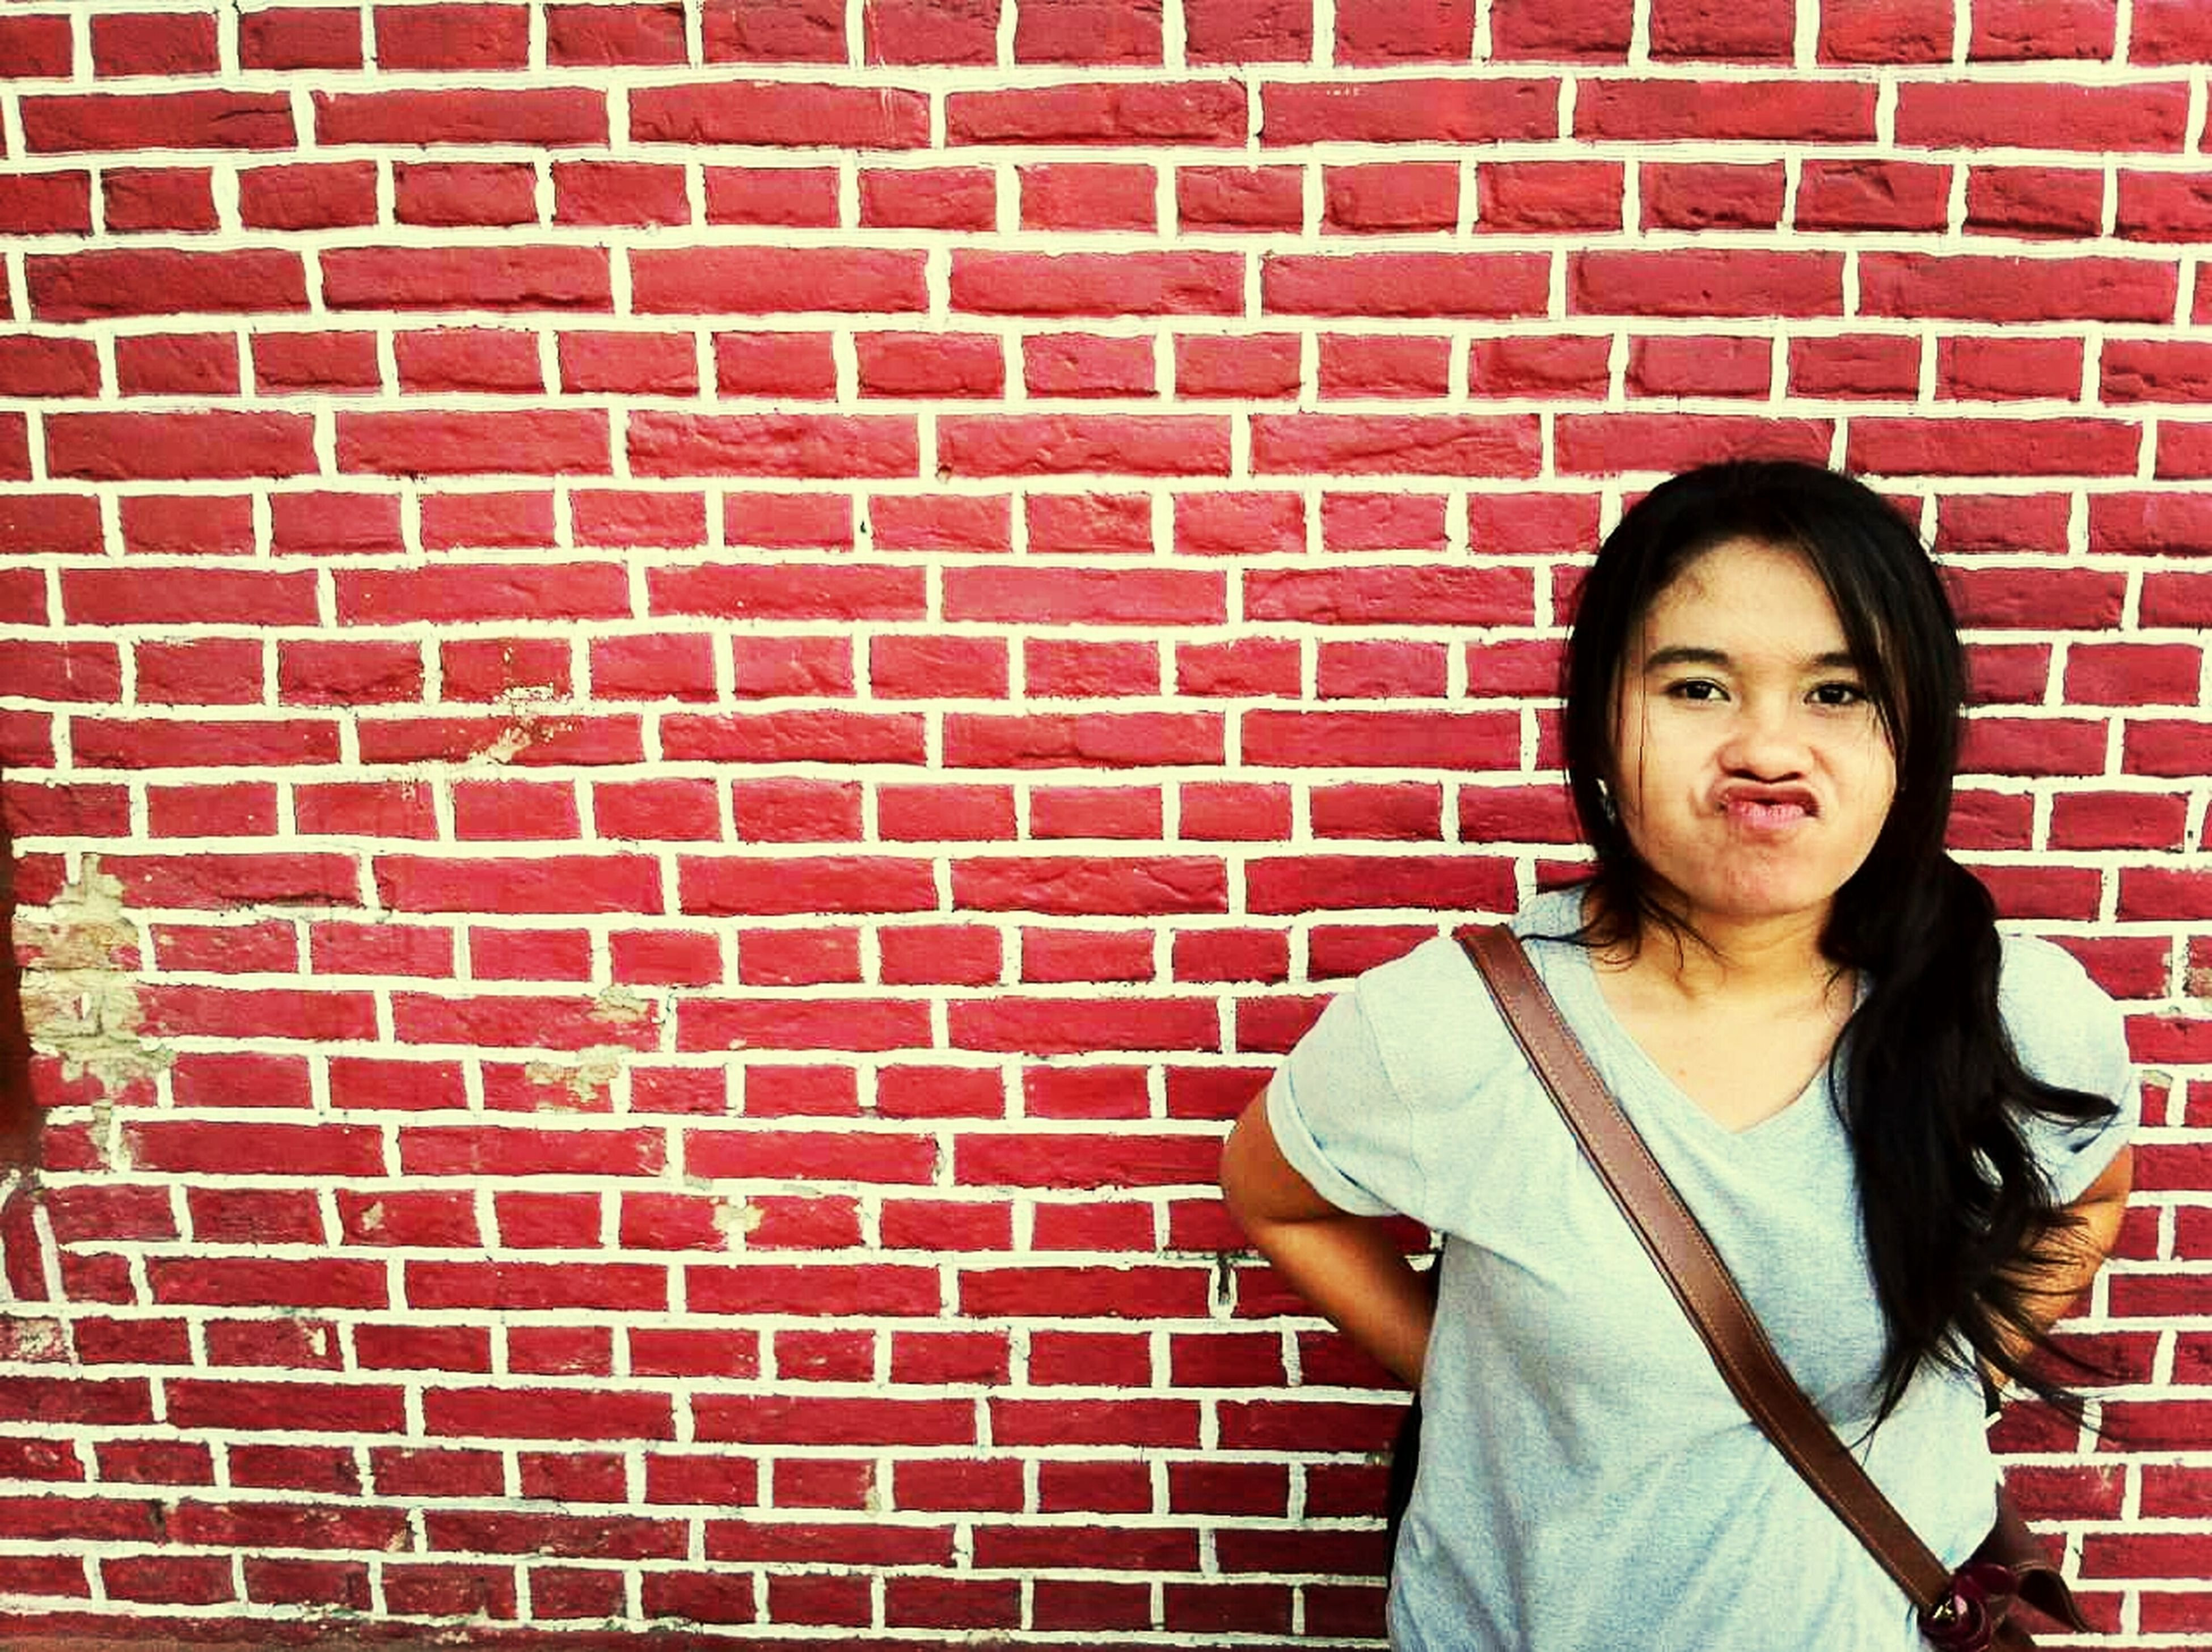 young adult, looking at camera, portrait, lifestyles, person, front view, young women, casual clothing, standing, leisure activity, brick wall, smiling, wall - building feature, red, happiness, waist up